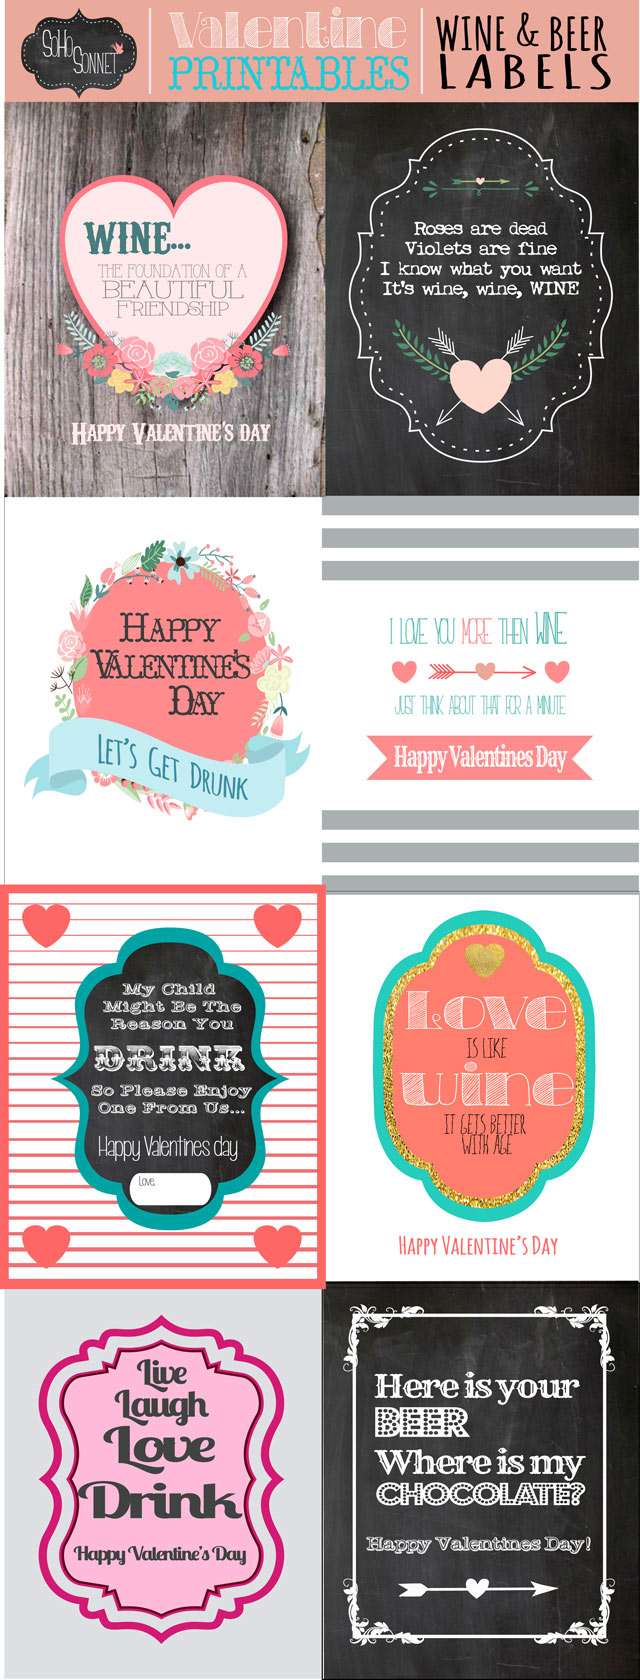 image about Printable Beer Labels named Valentines Working day Wine and Beer Present Labels - SohoSonnet